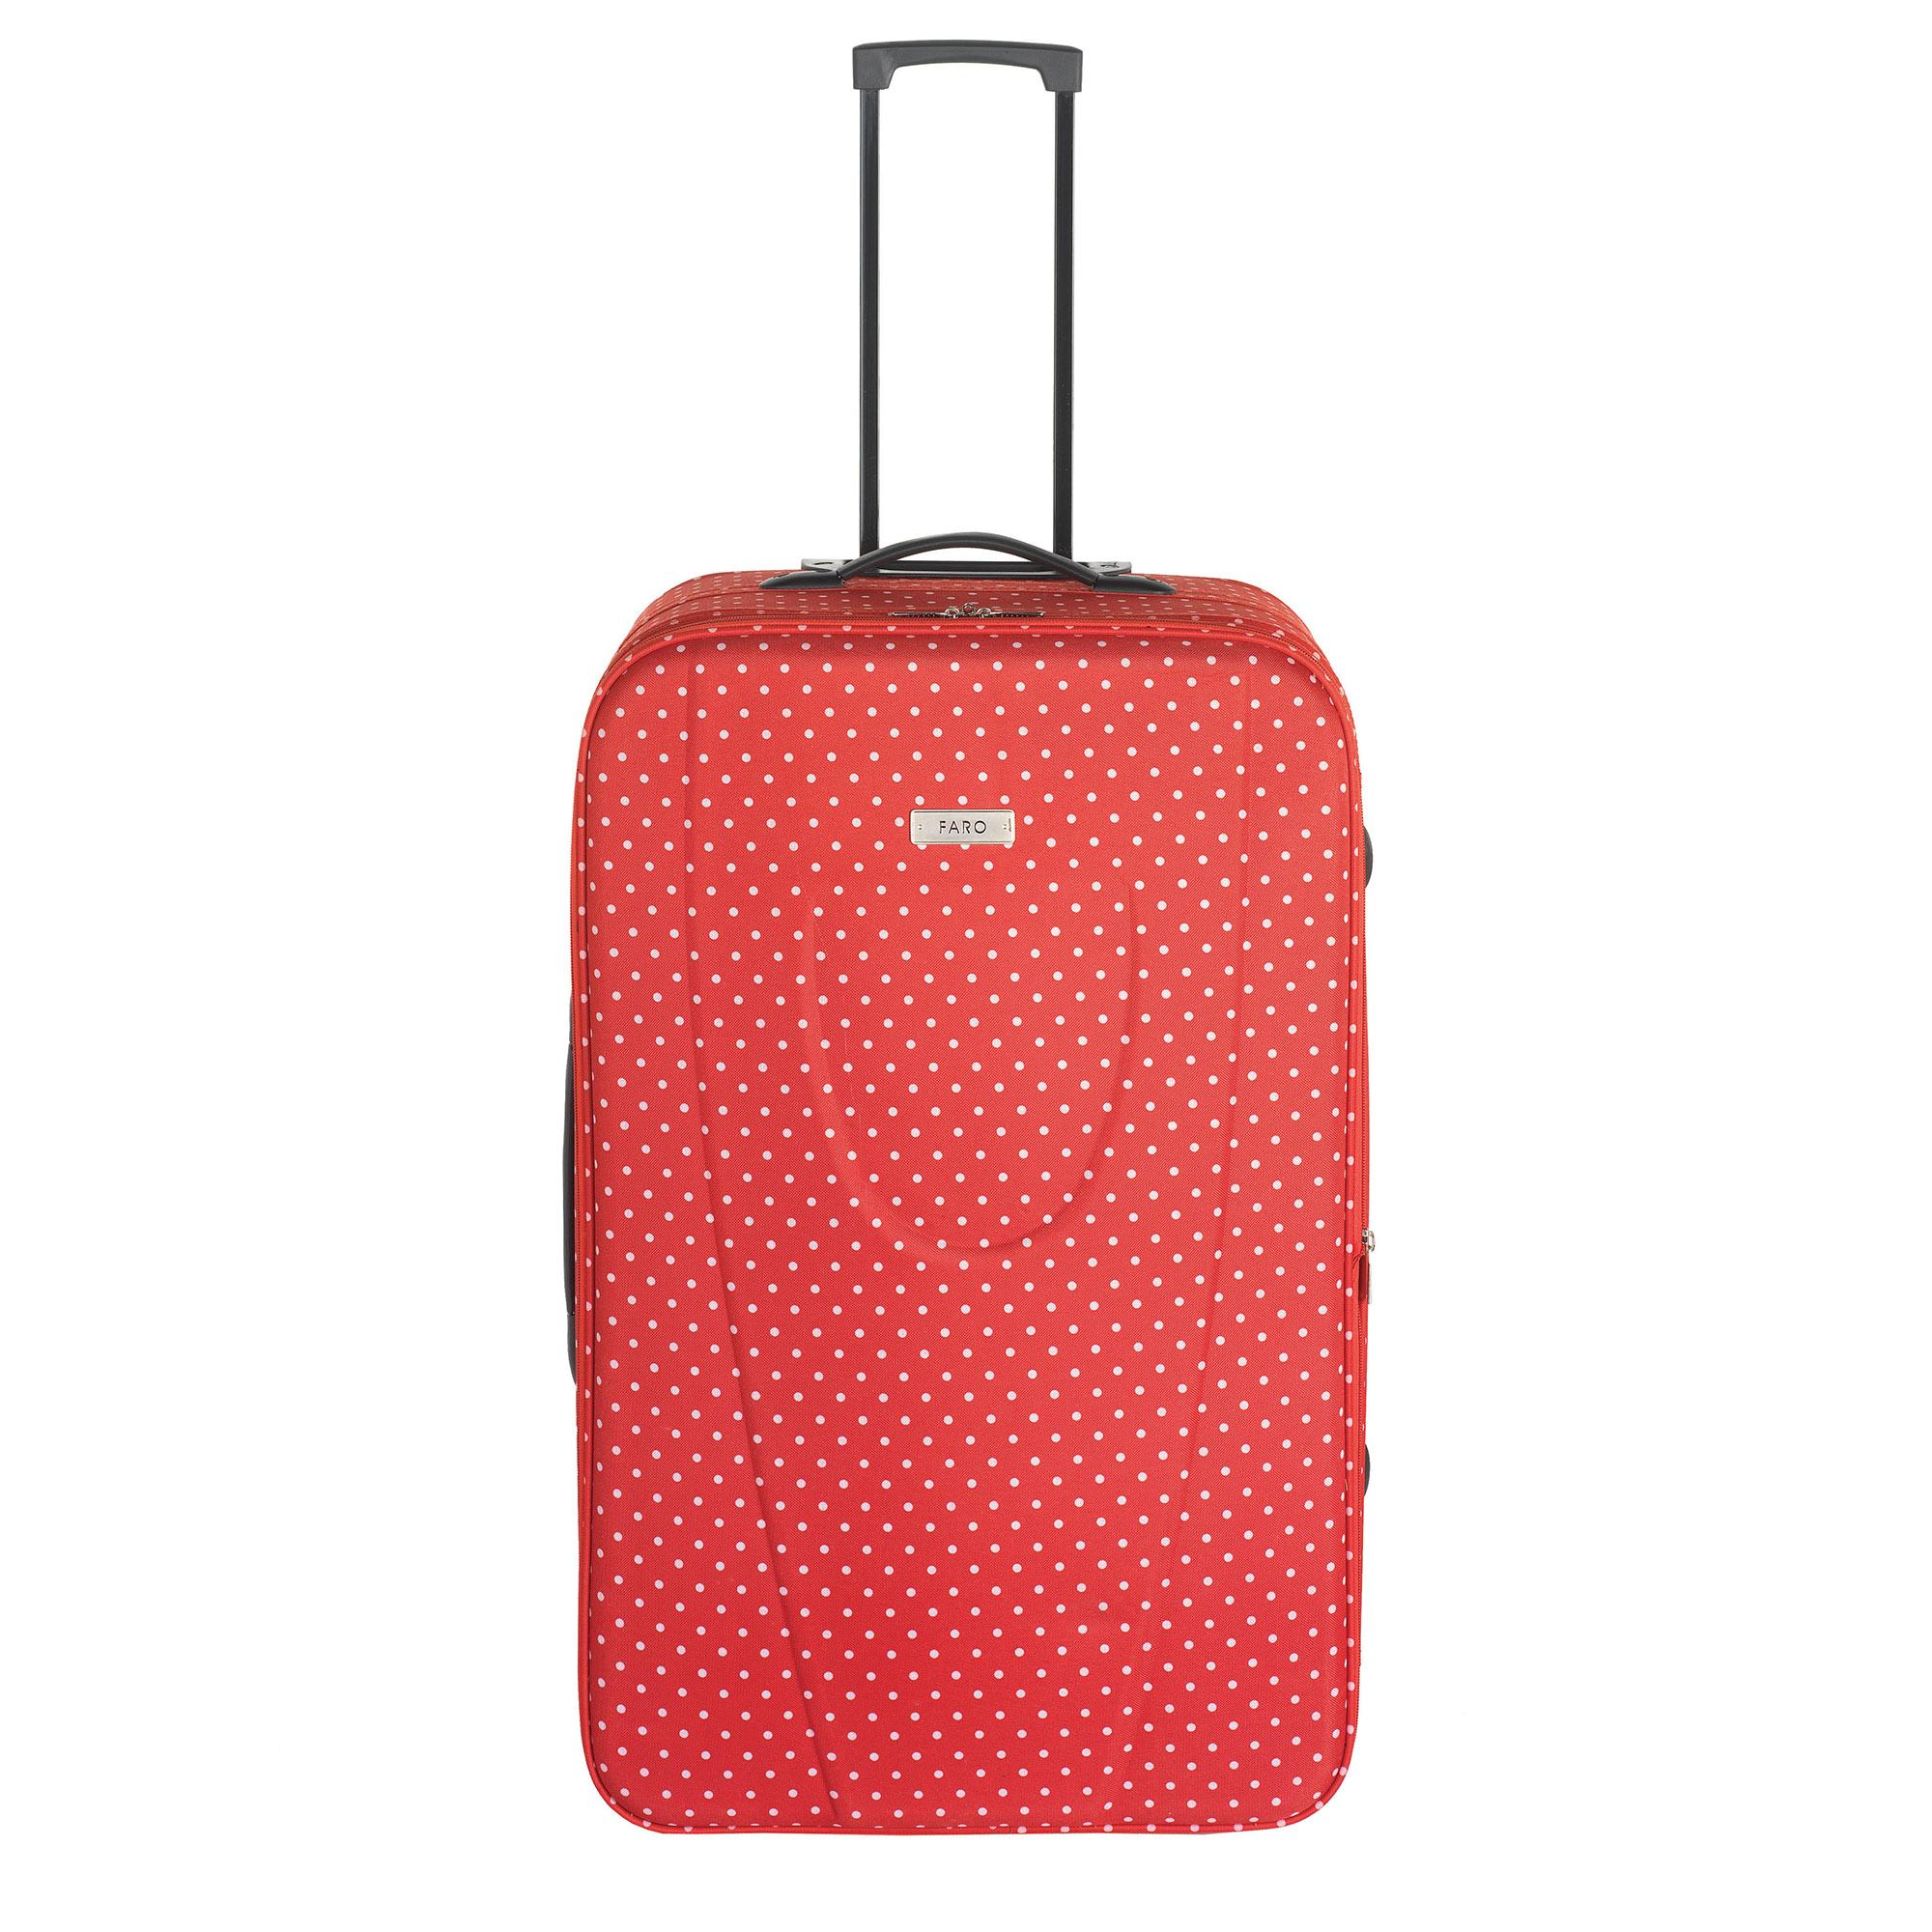 Faro Red Dot Large Suitcase